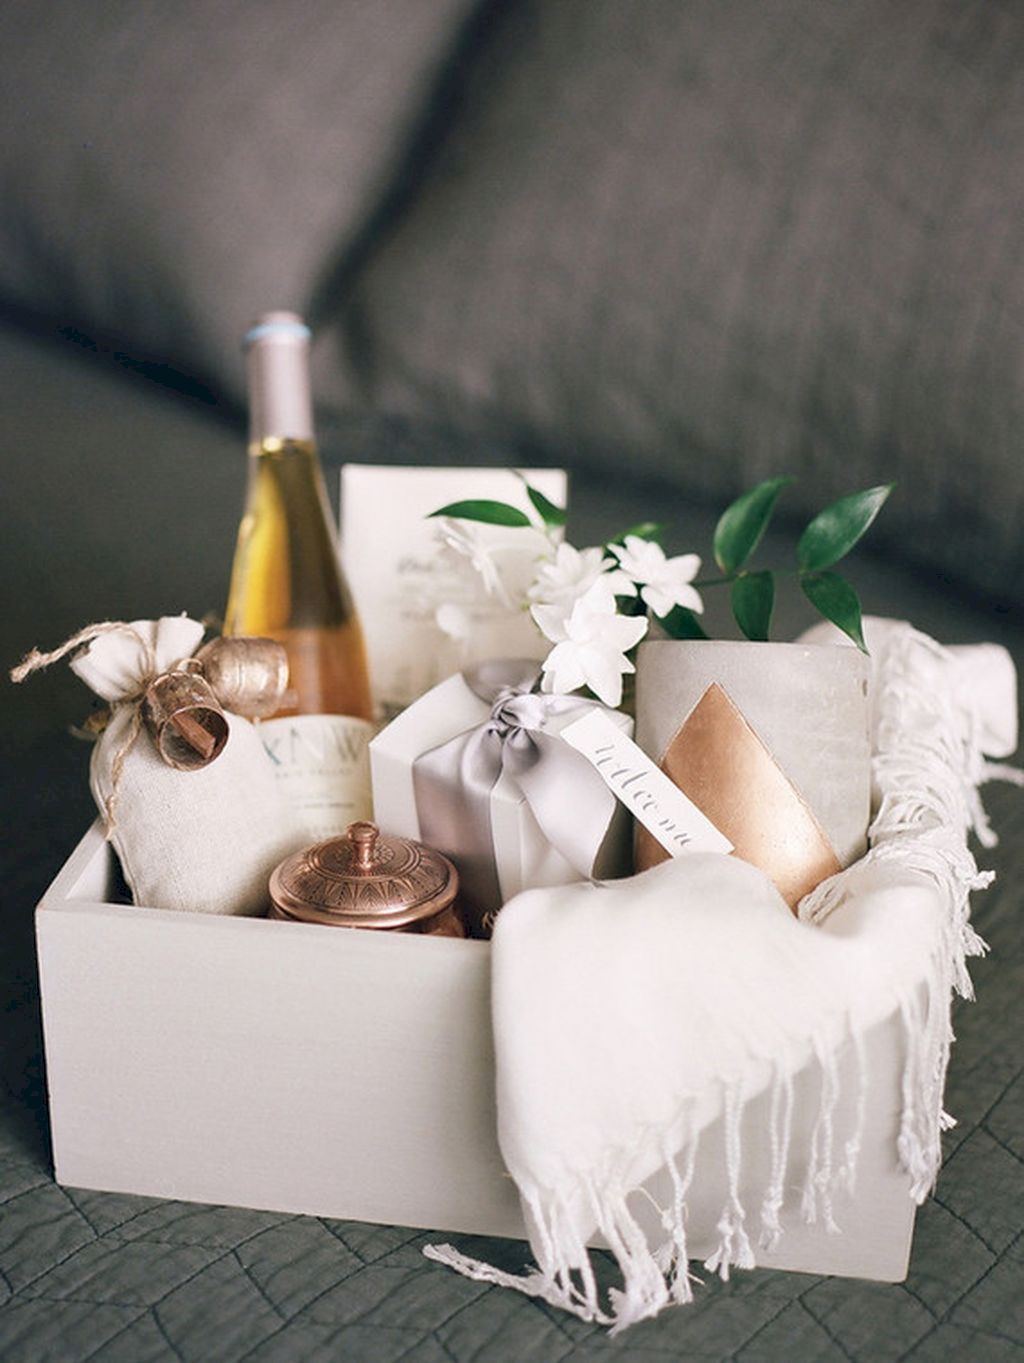 DIY Easter basket ideas made from affordable and recycled materials very charming as Spring celebration accessories Image 7